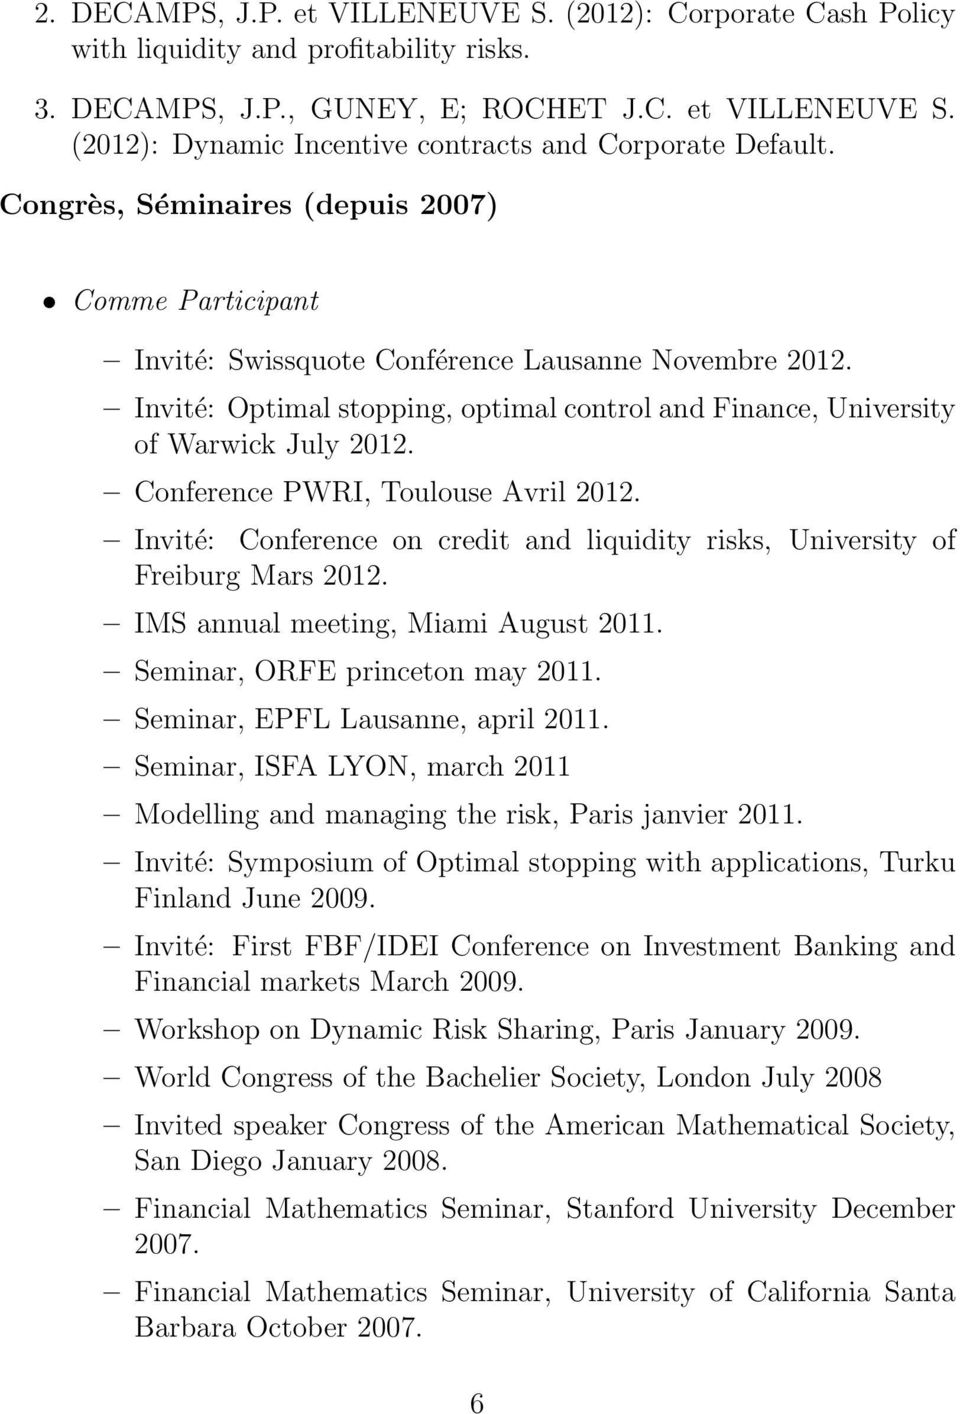 Conference PWRI, Toulouse Avril 2012. Invité: Conference on credit and liquidity risks, University of Freiburg Mars 2012. IMS annual meeting, Miami August 2011. Seminar, ORFE princeton may 2011.